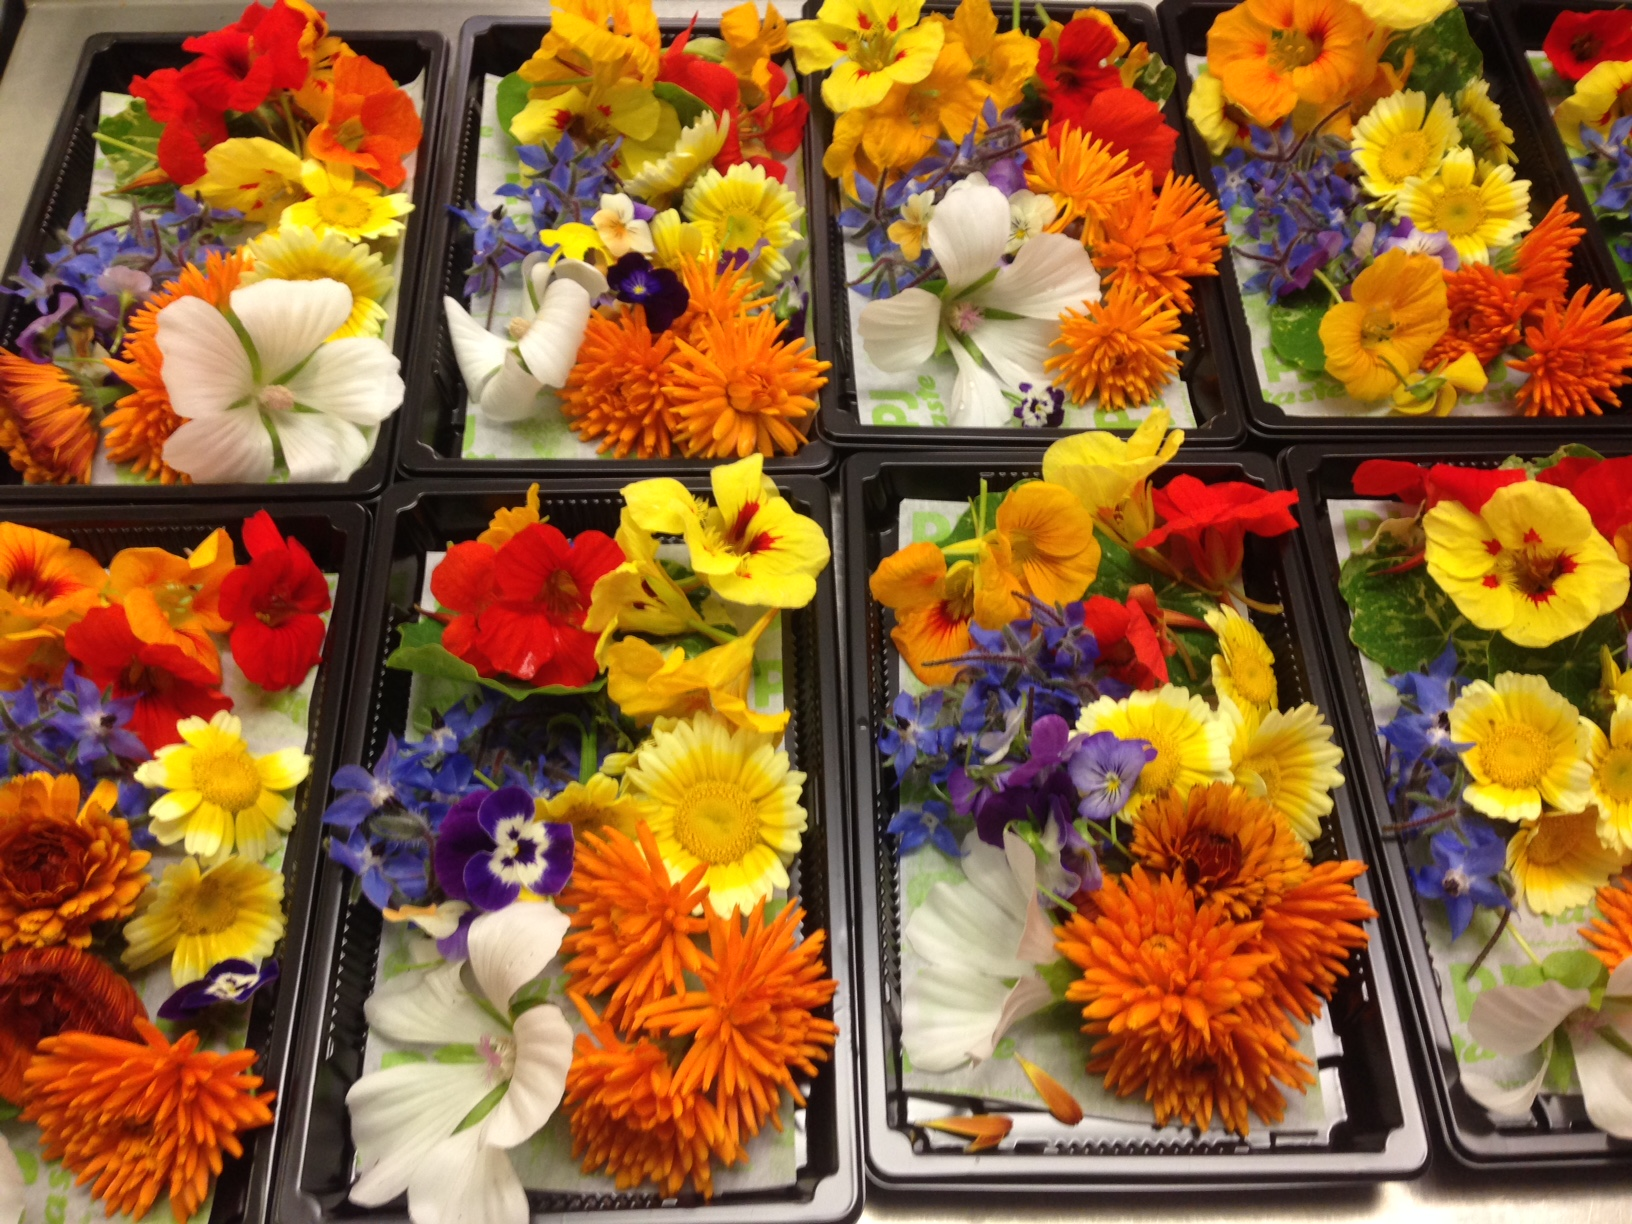 Selection of PJ taste grown edible flowers